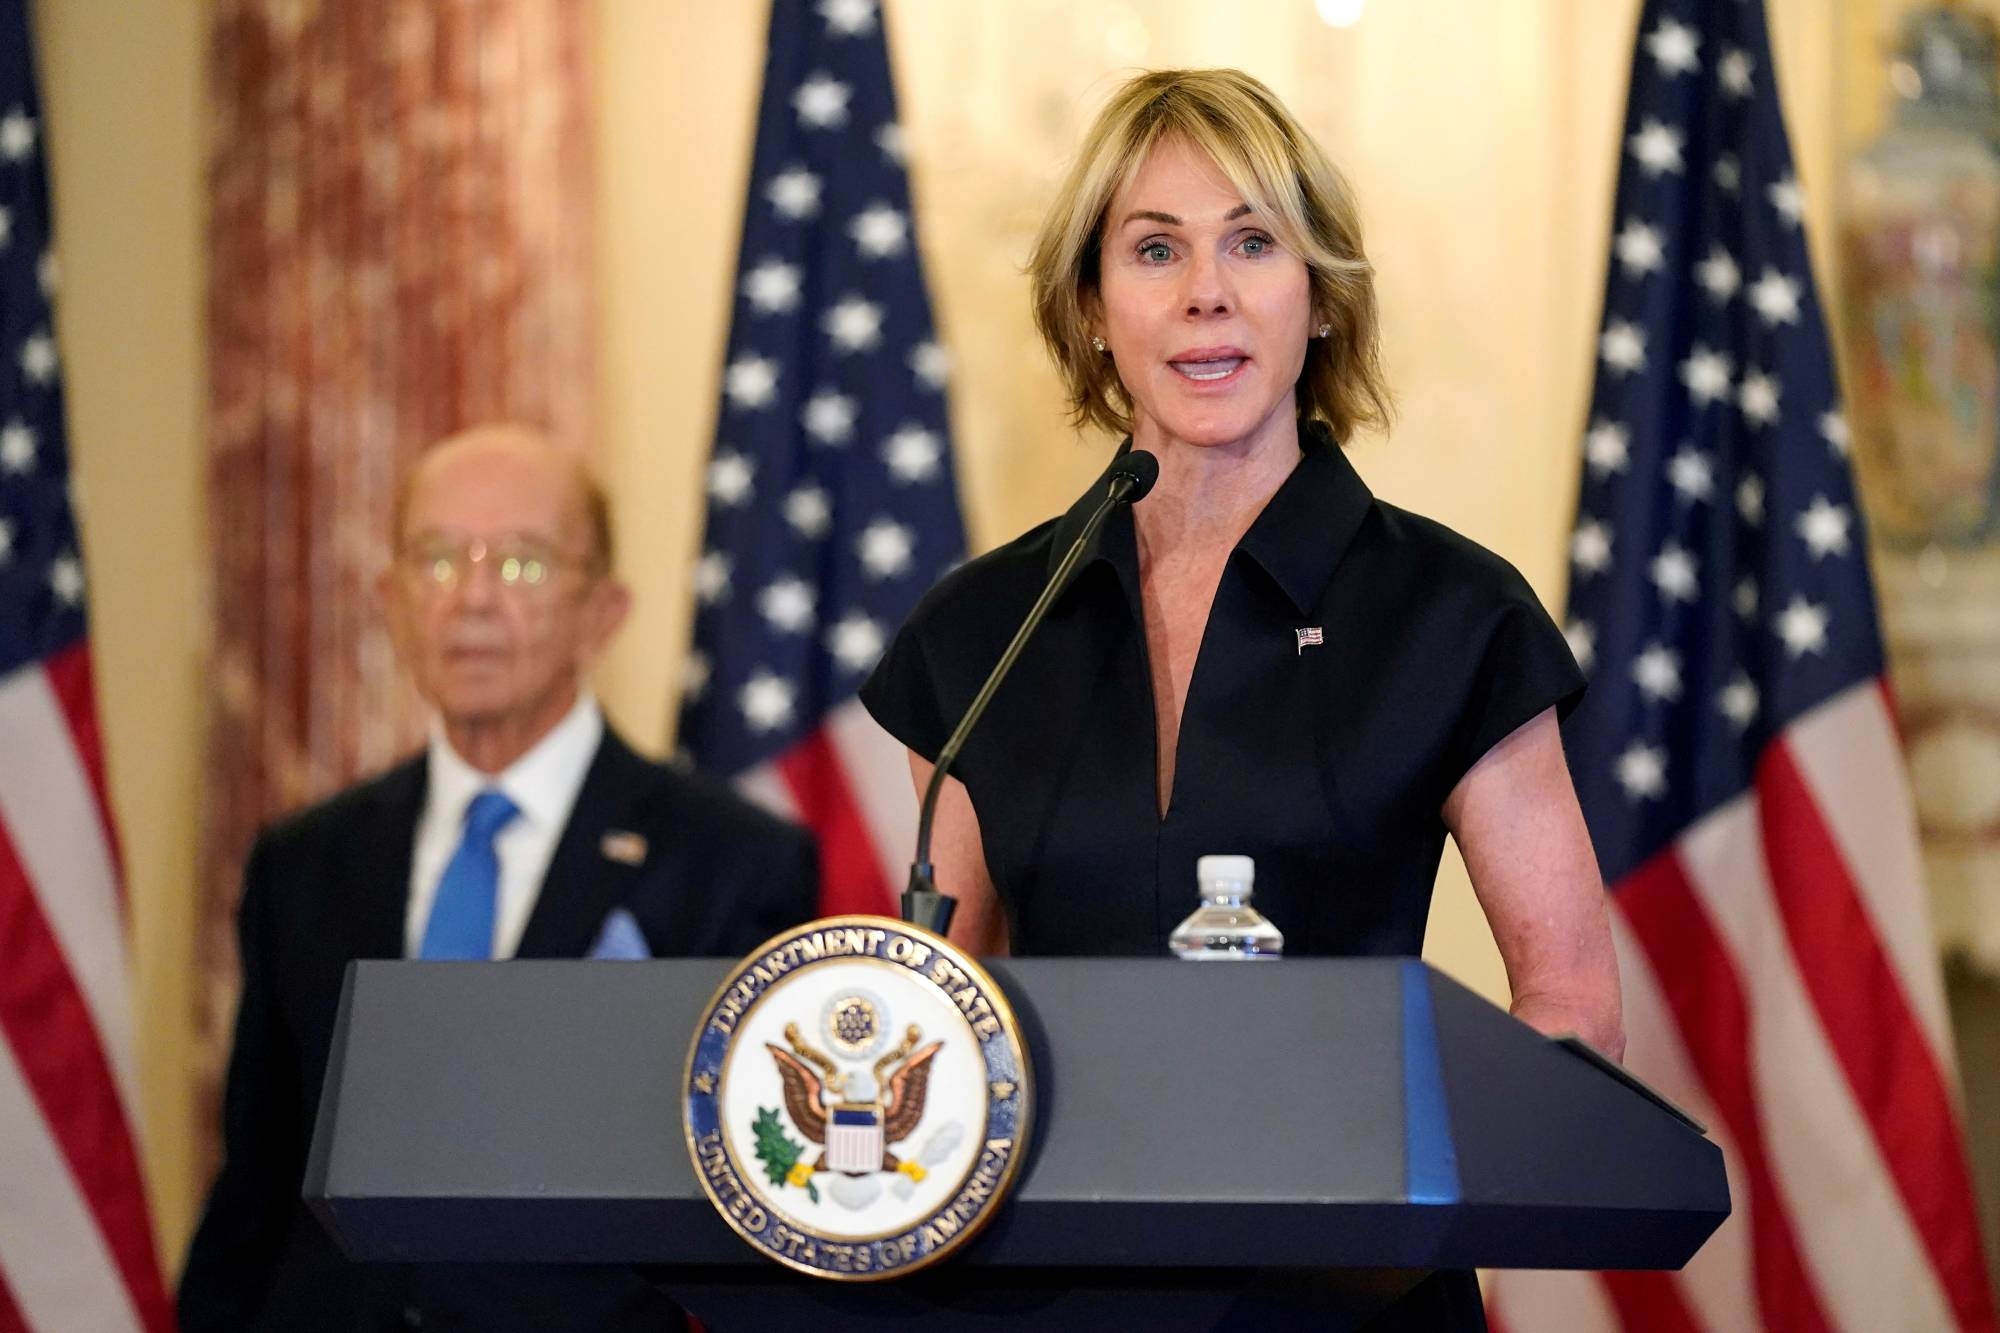 U.S. Ambassador to the United Nations Kelly Craft speaks during a news conference at the U.S. State Department in Washington in September. | POOL / VIA REUTERS